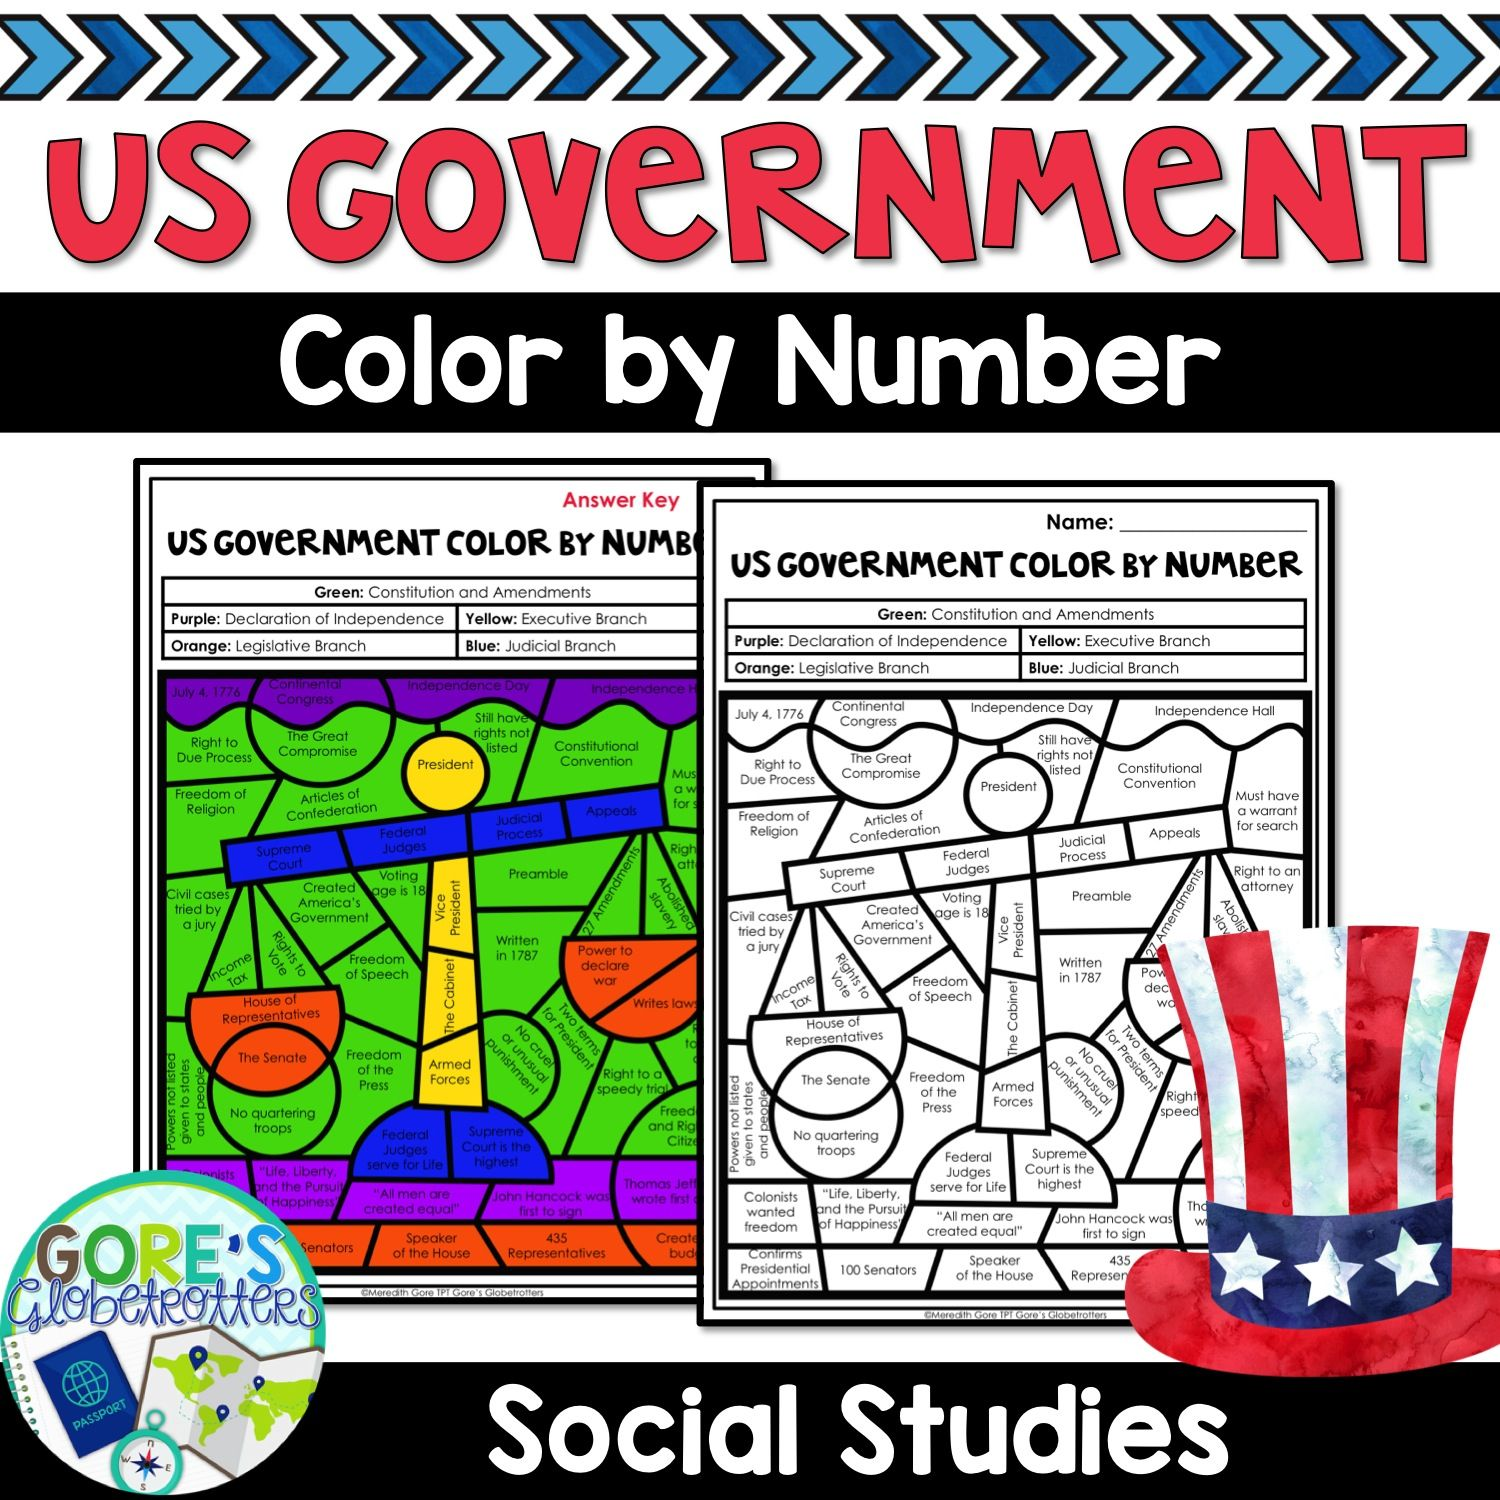 United States Government Color by Number Worksheet | Social Studies ...